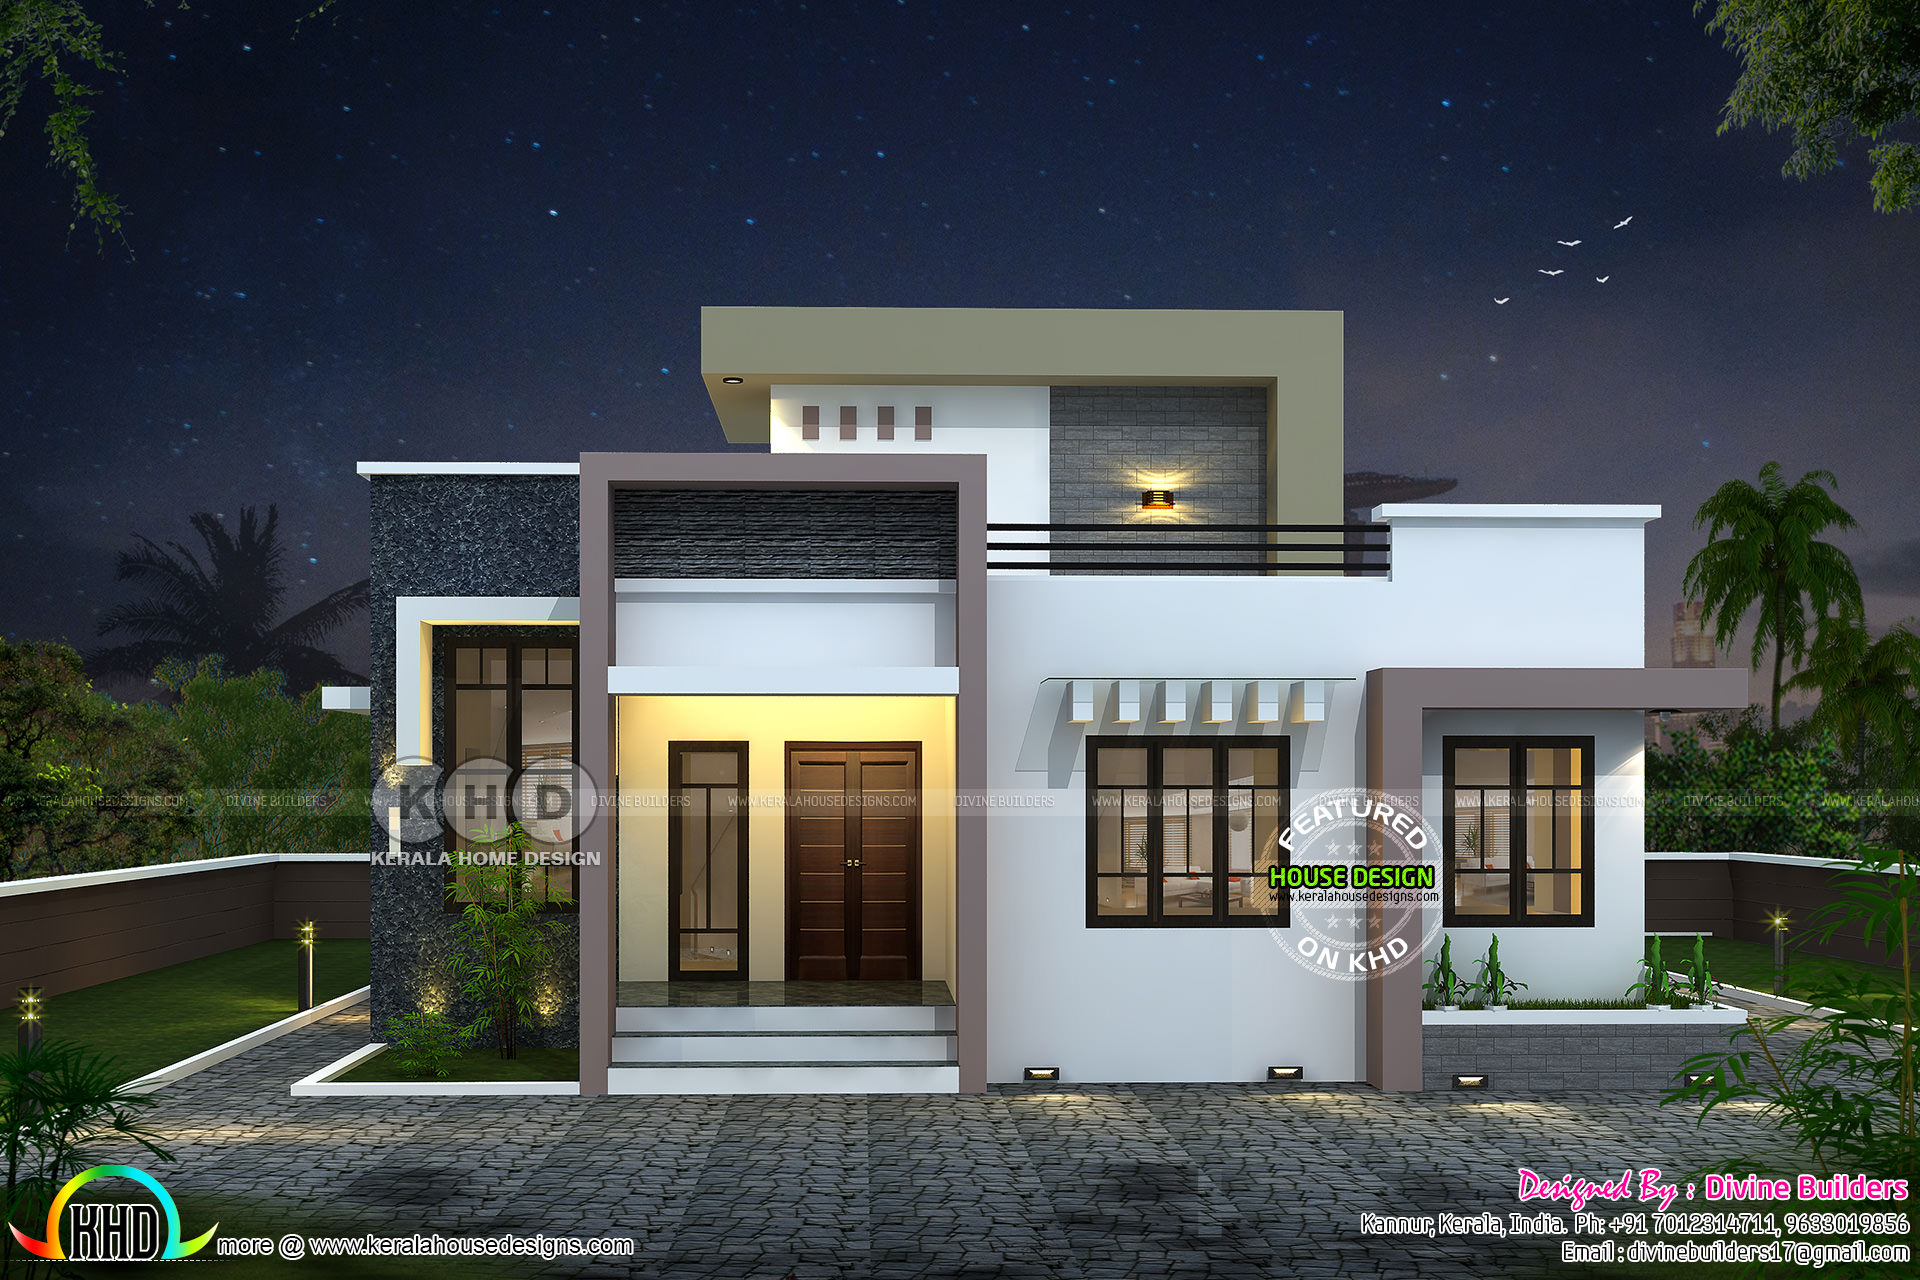 Stair room 2 bedroom house 1431 square feet kerala home for Indian small house design 2 bedroom